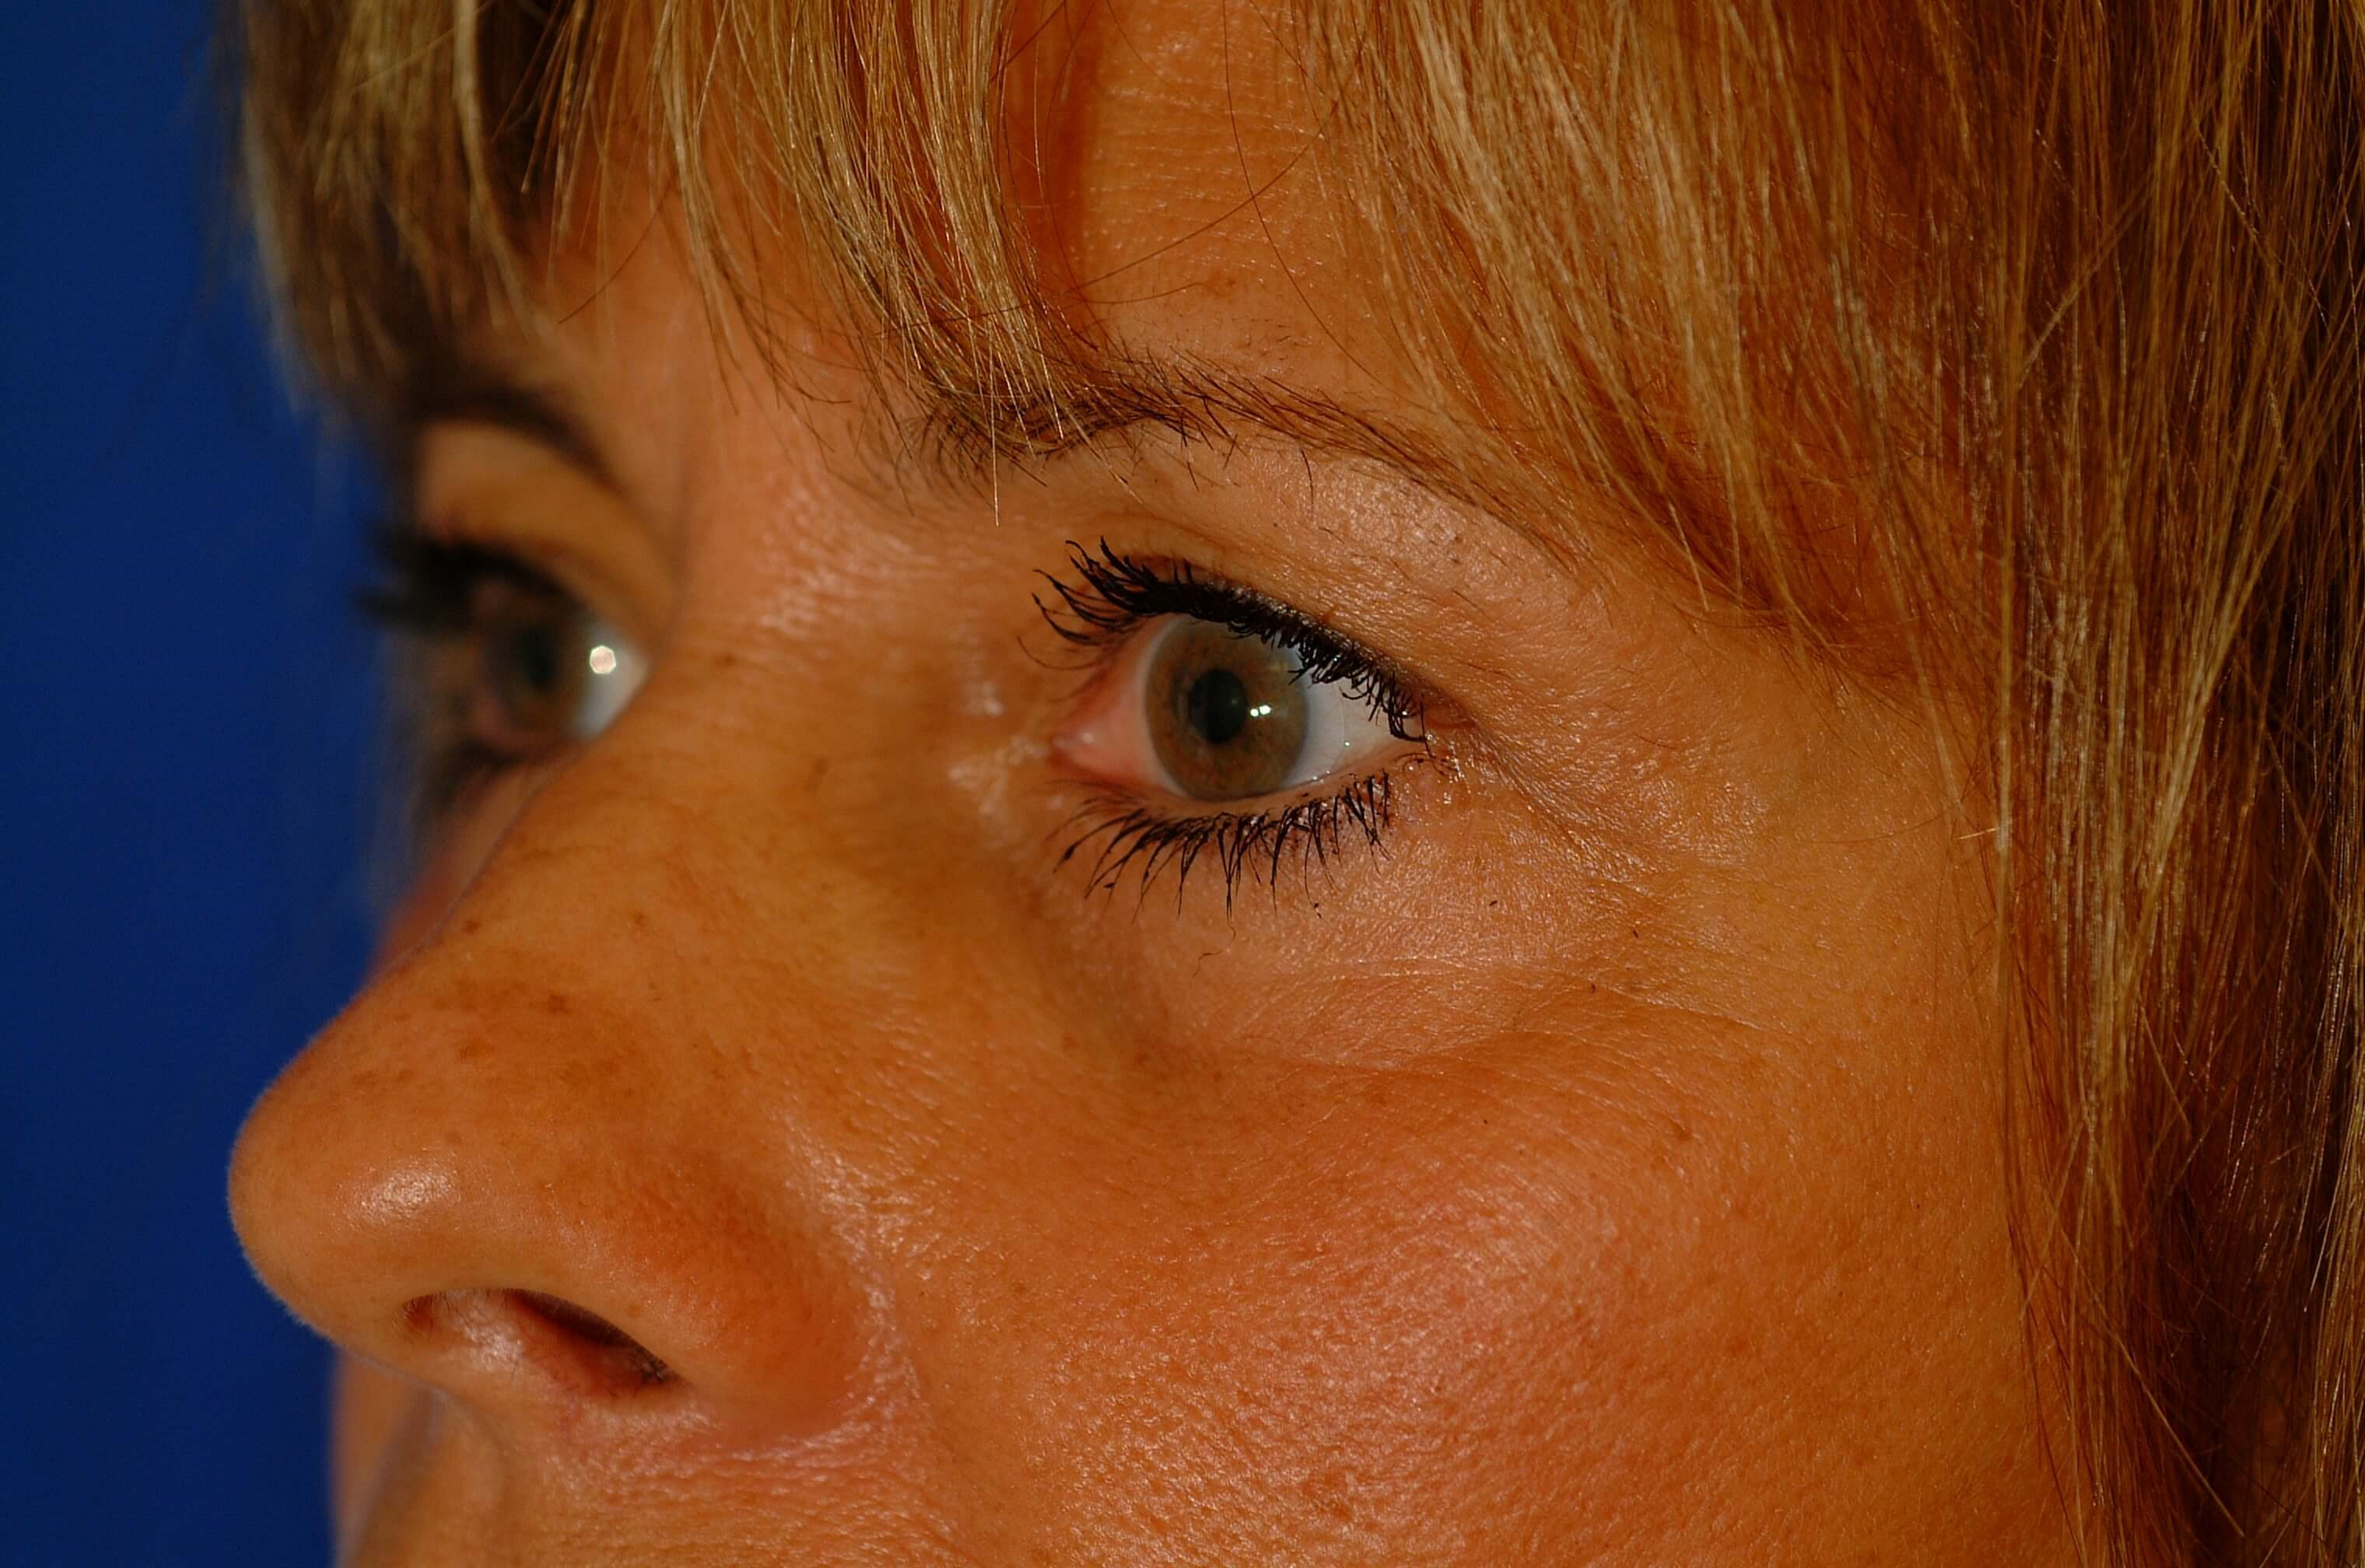 Newport Beach Blepharoplasty Oblique View After